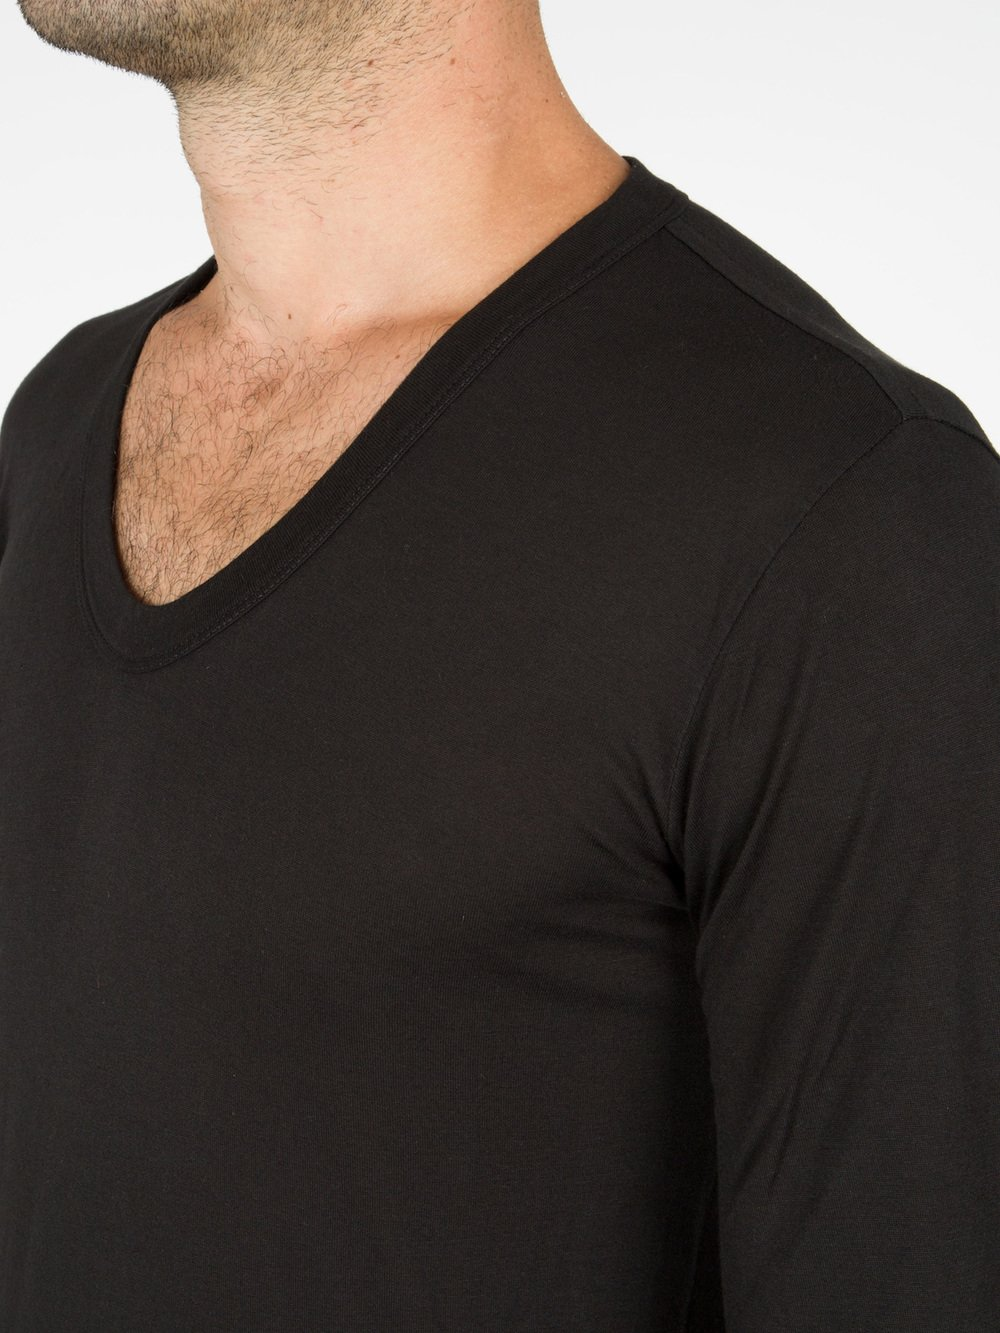 RICK OWENS - LONG SLEEVE TEE